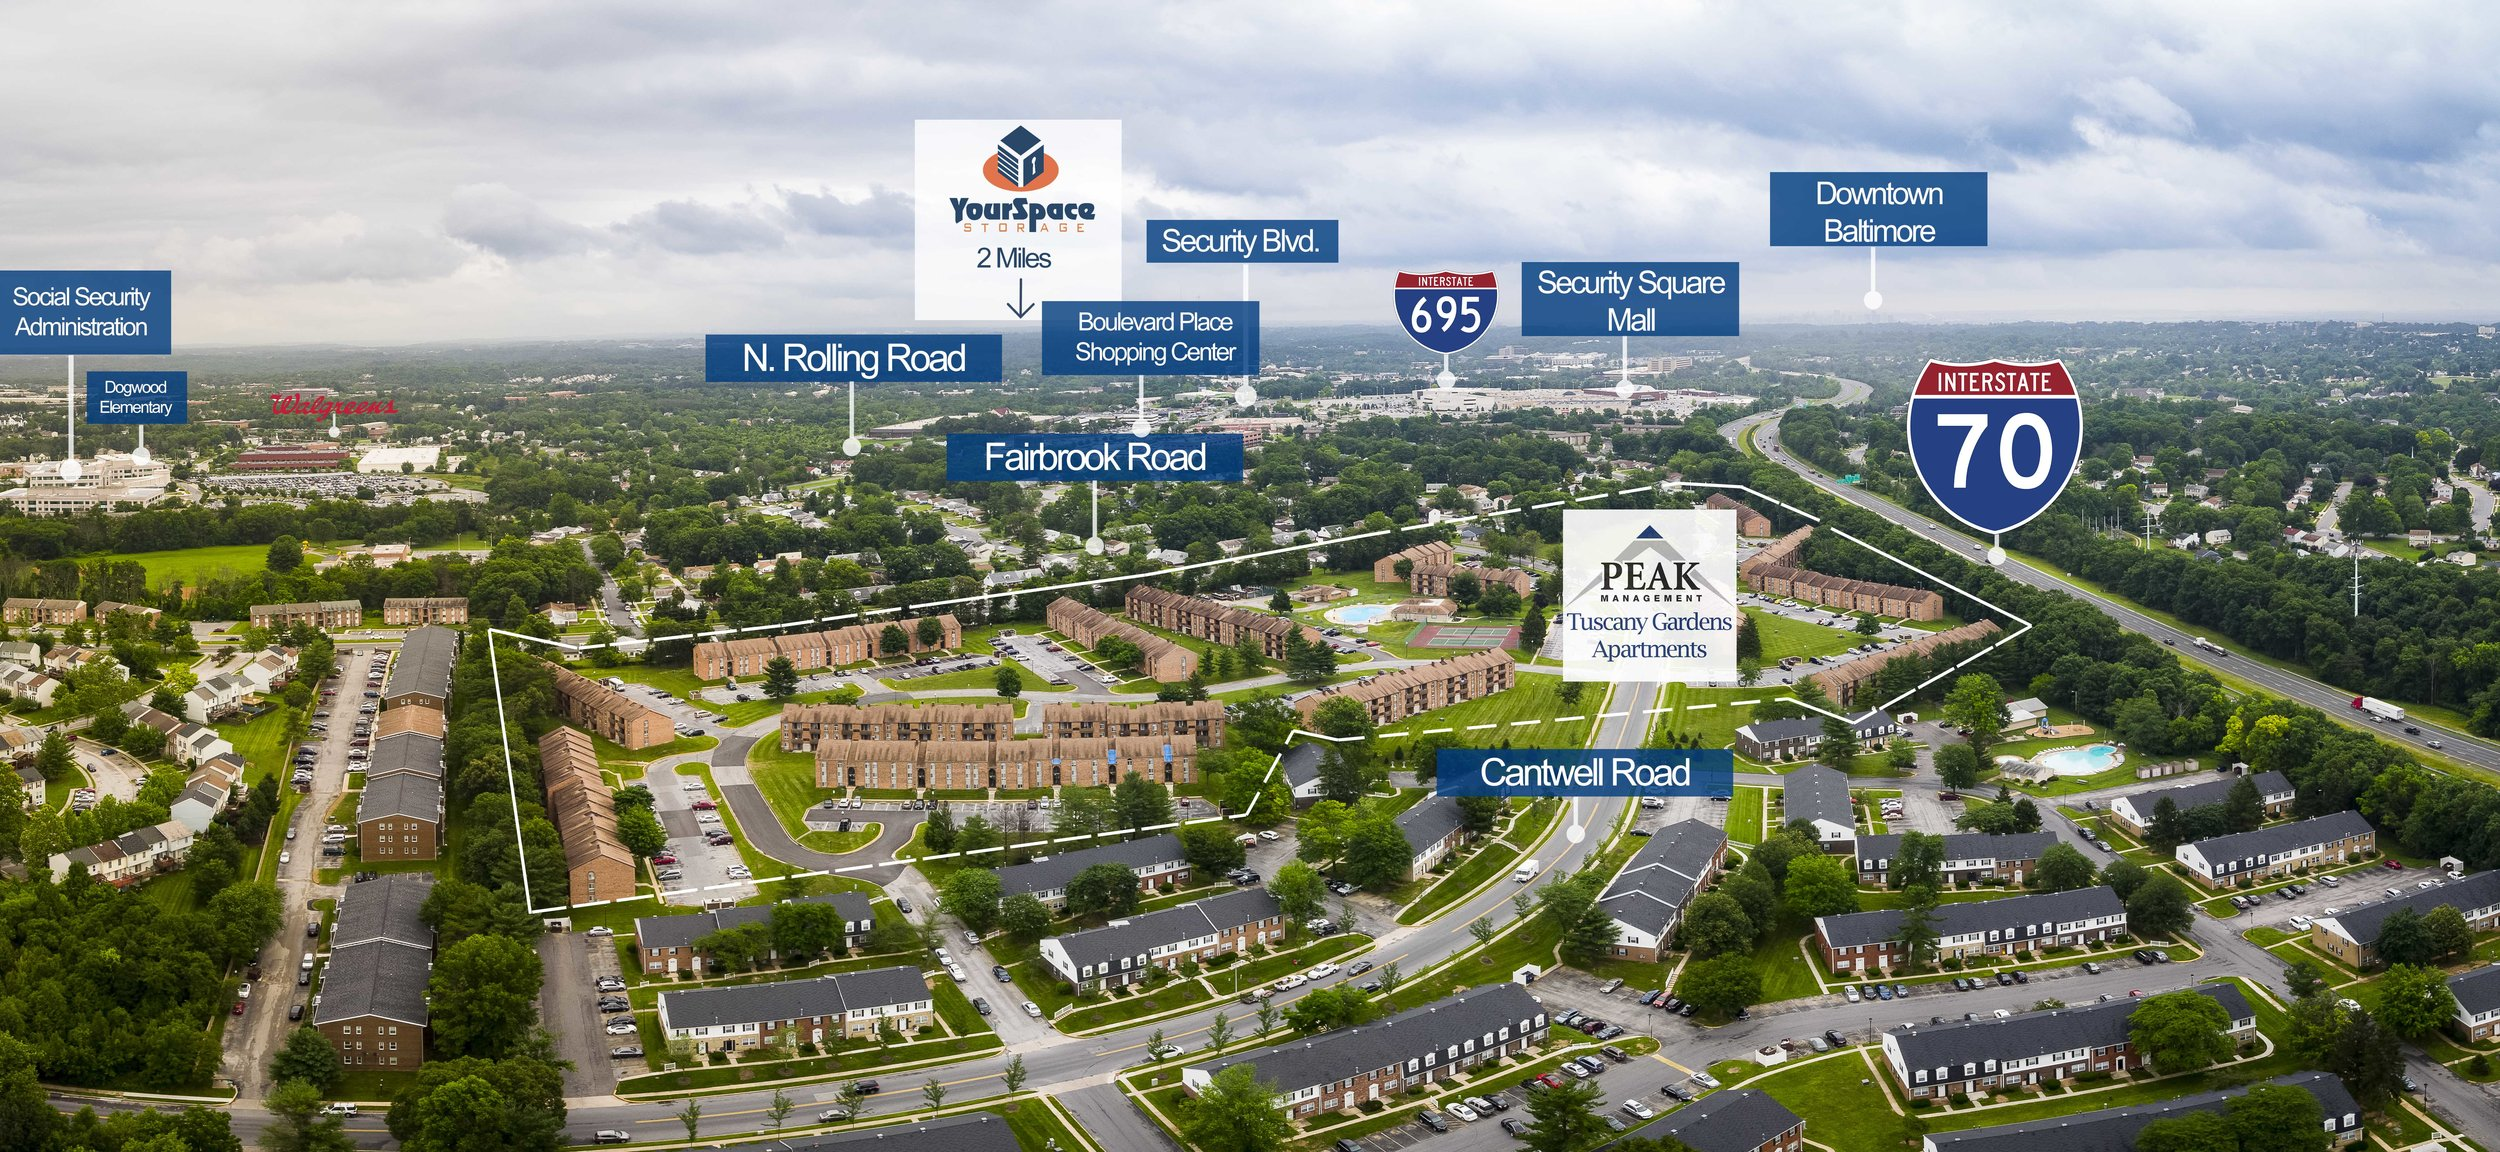 Aerial View of Tuscany Gardens Apartments in Windsor Mill, MD 21244